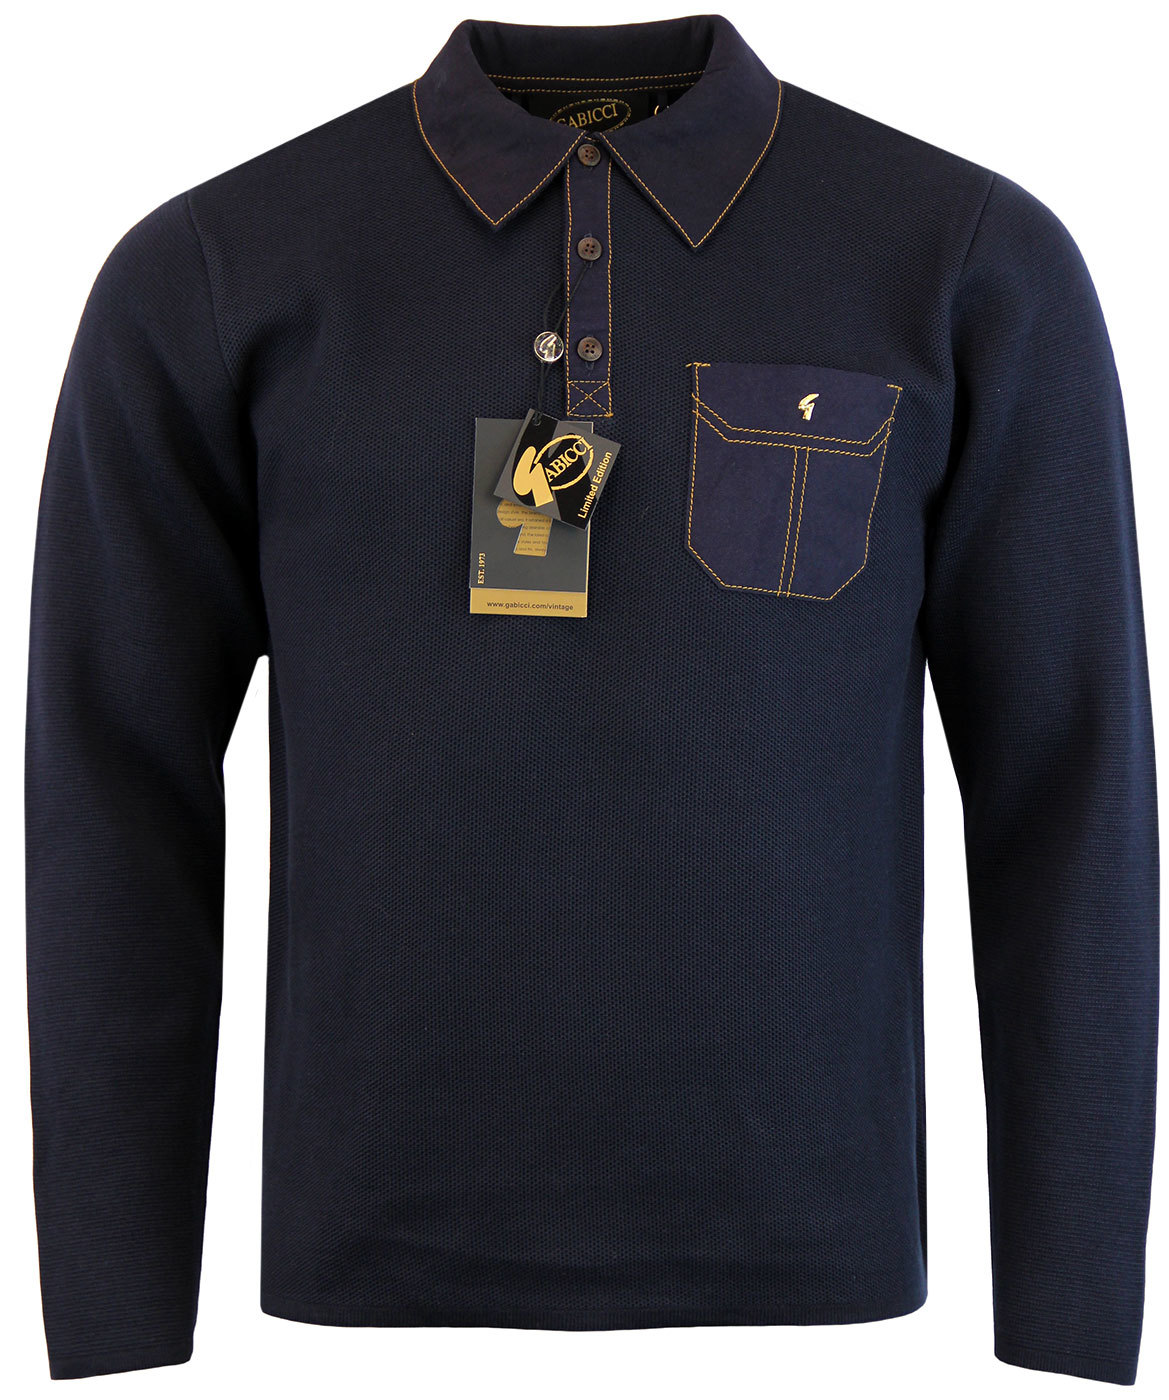 GABICCI VNTAGE Retro Mod Ltd Edition Knitted Polo